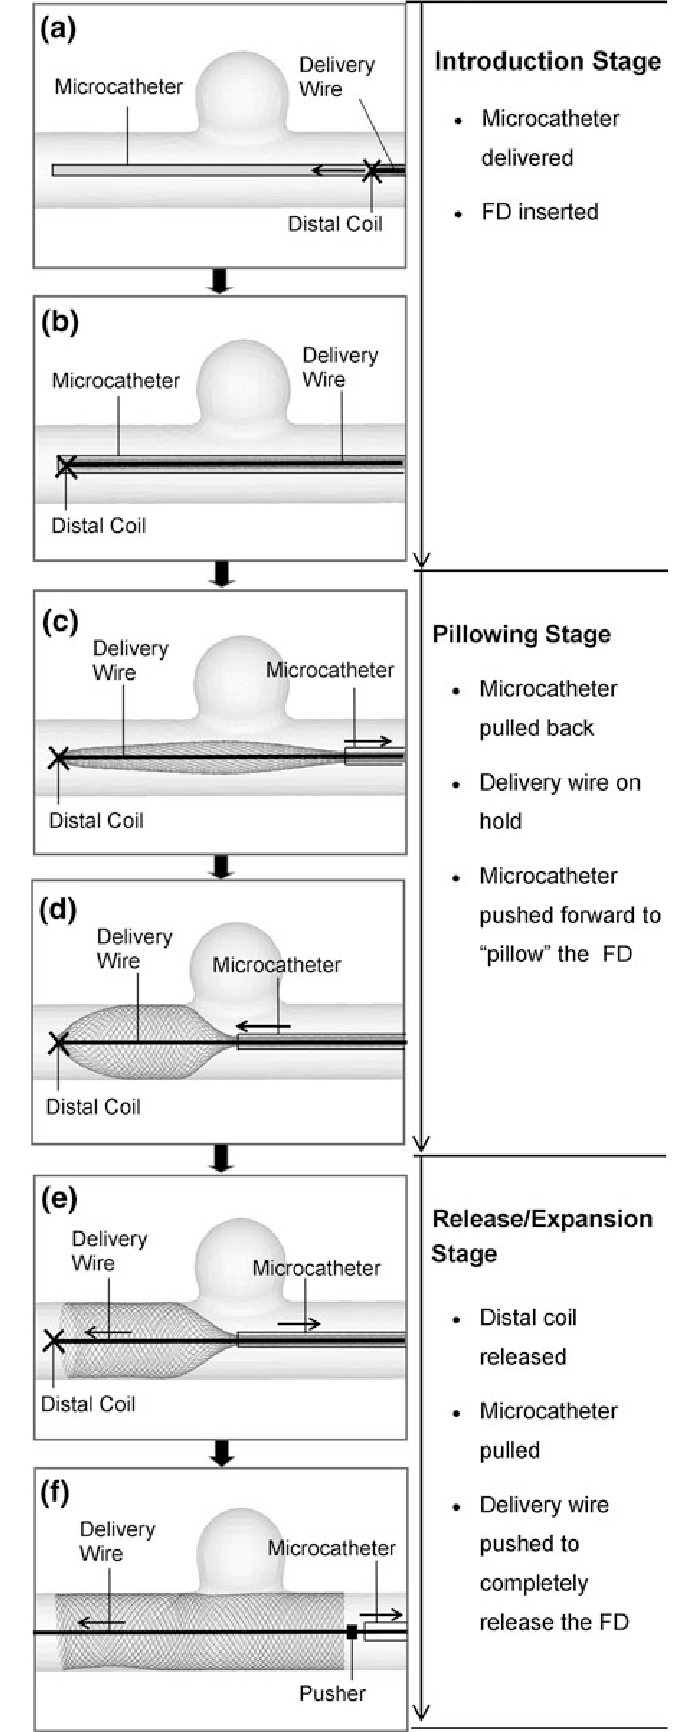 Procedure of FD deployment using the push-pull technique